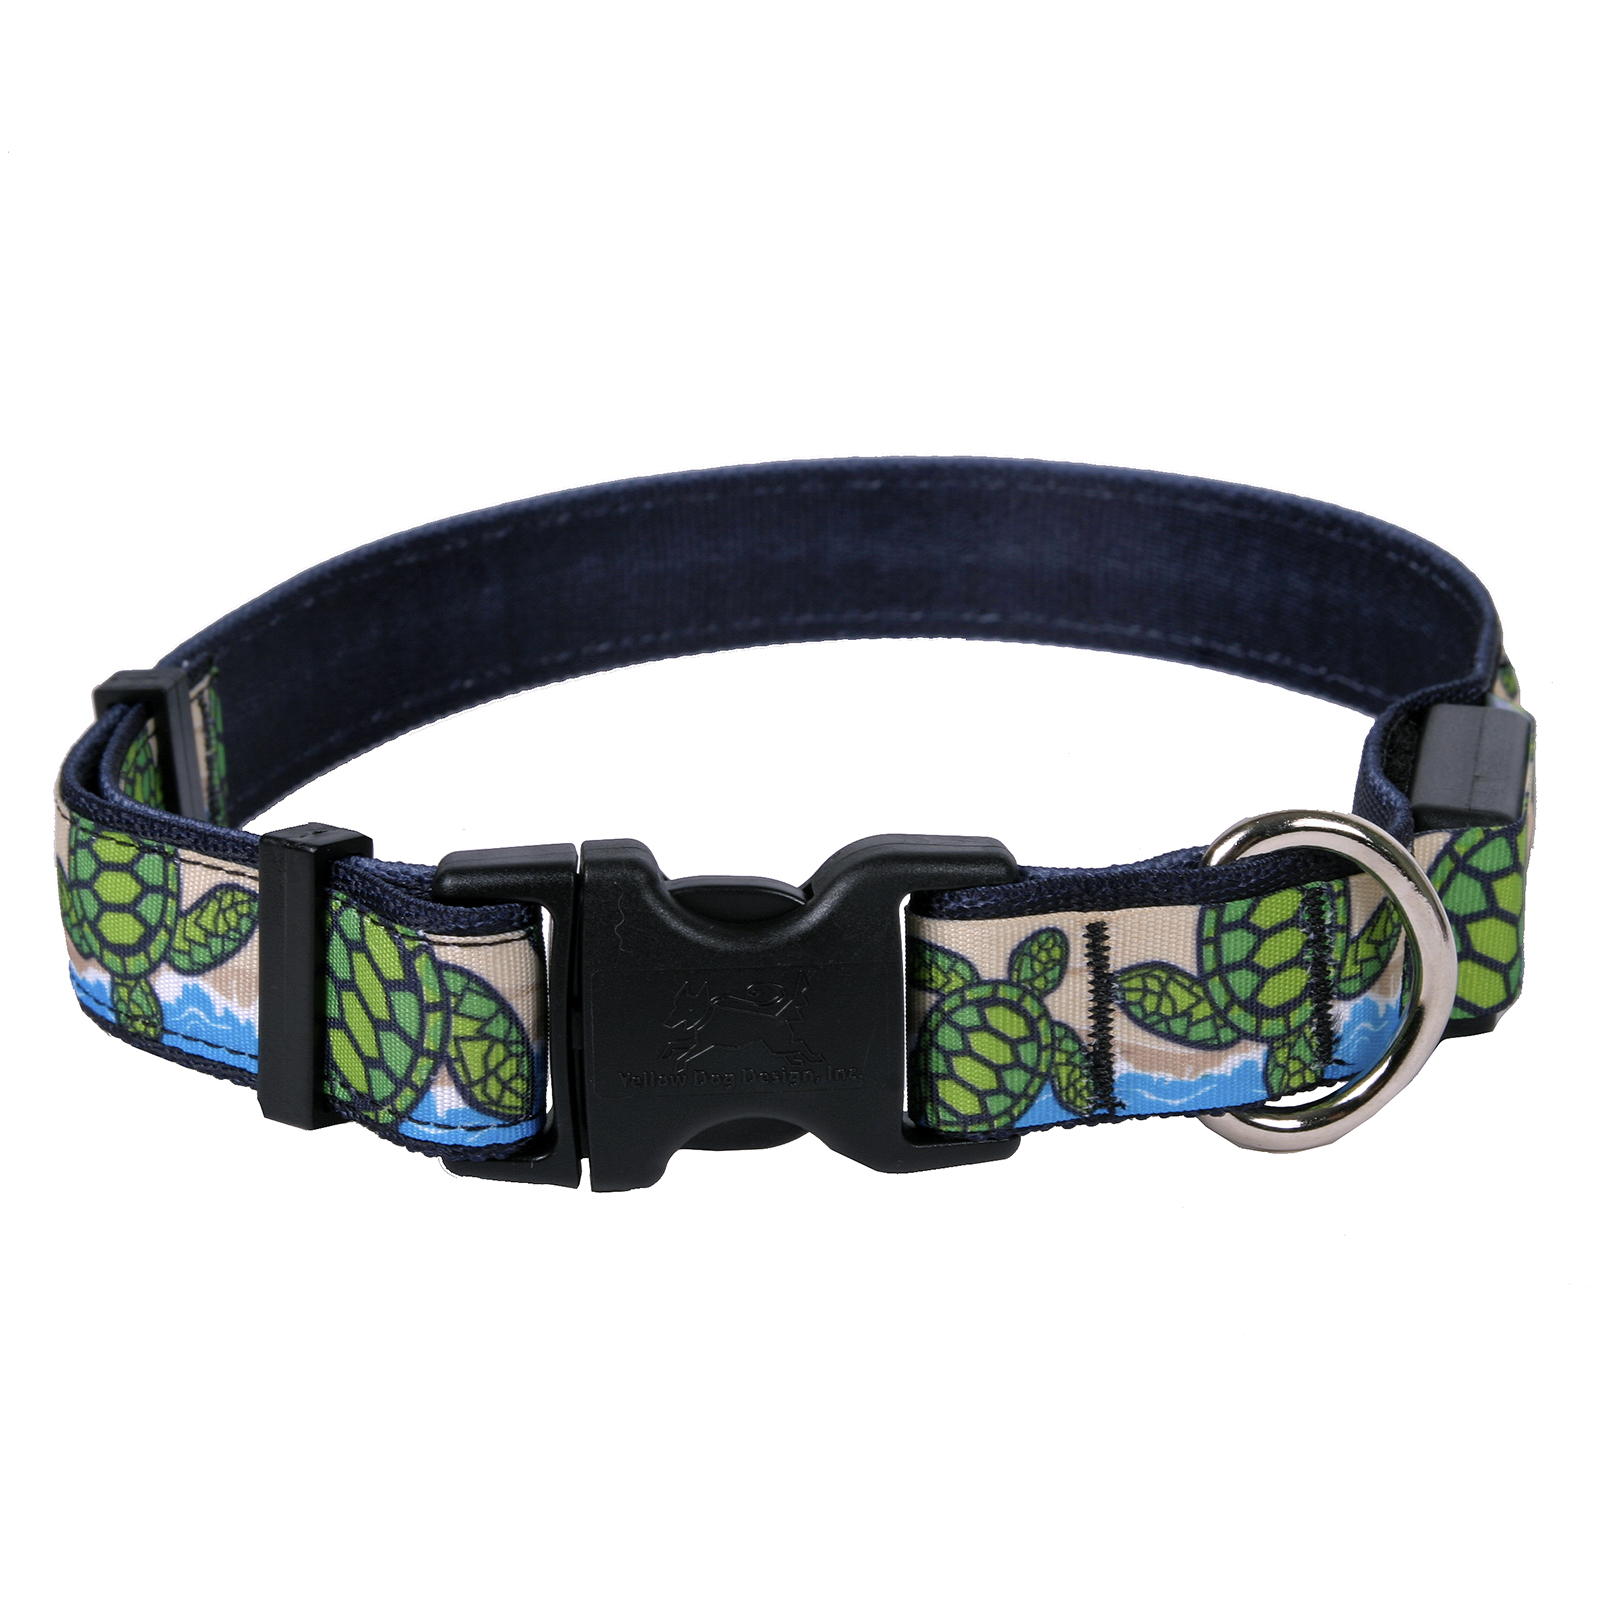 Turtles on the Beach ORION LED Dog Collar